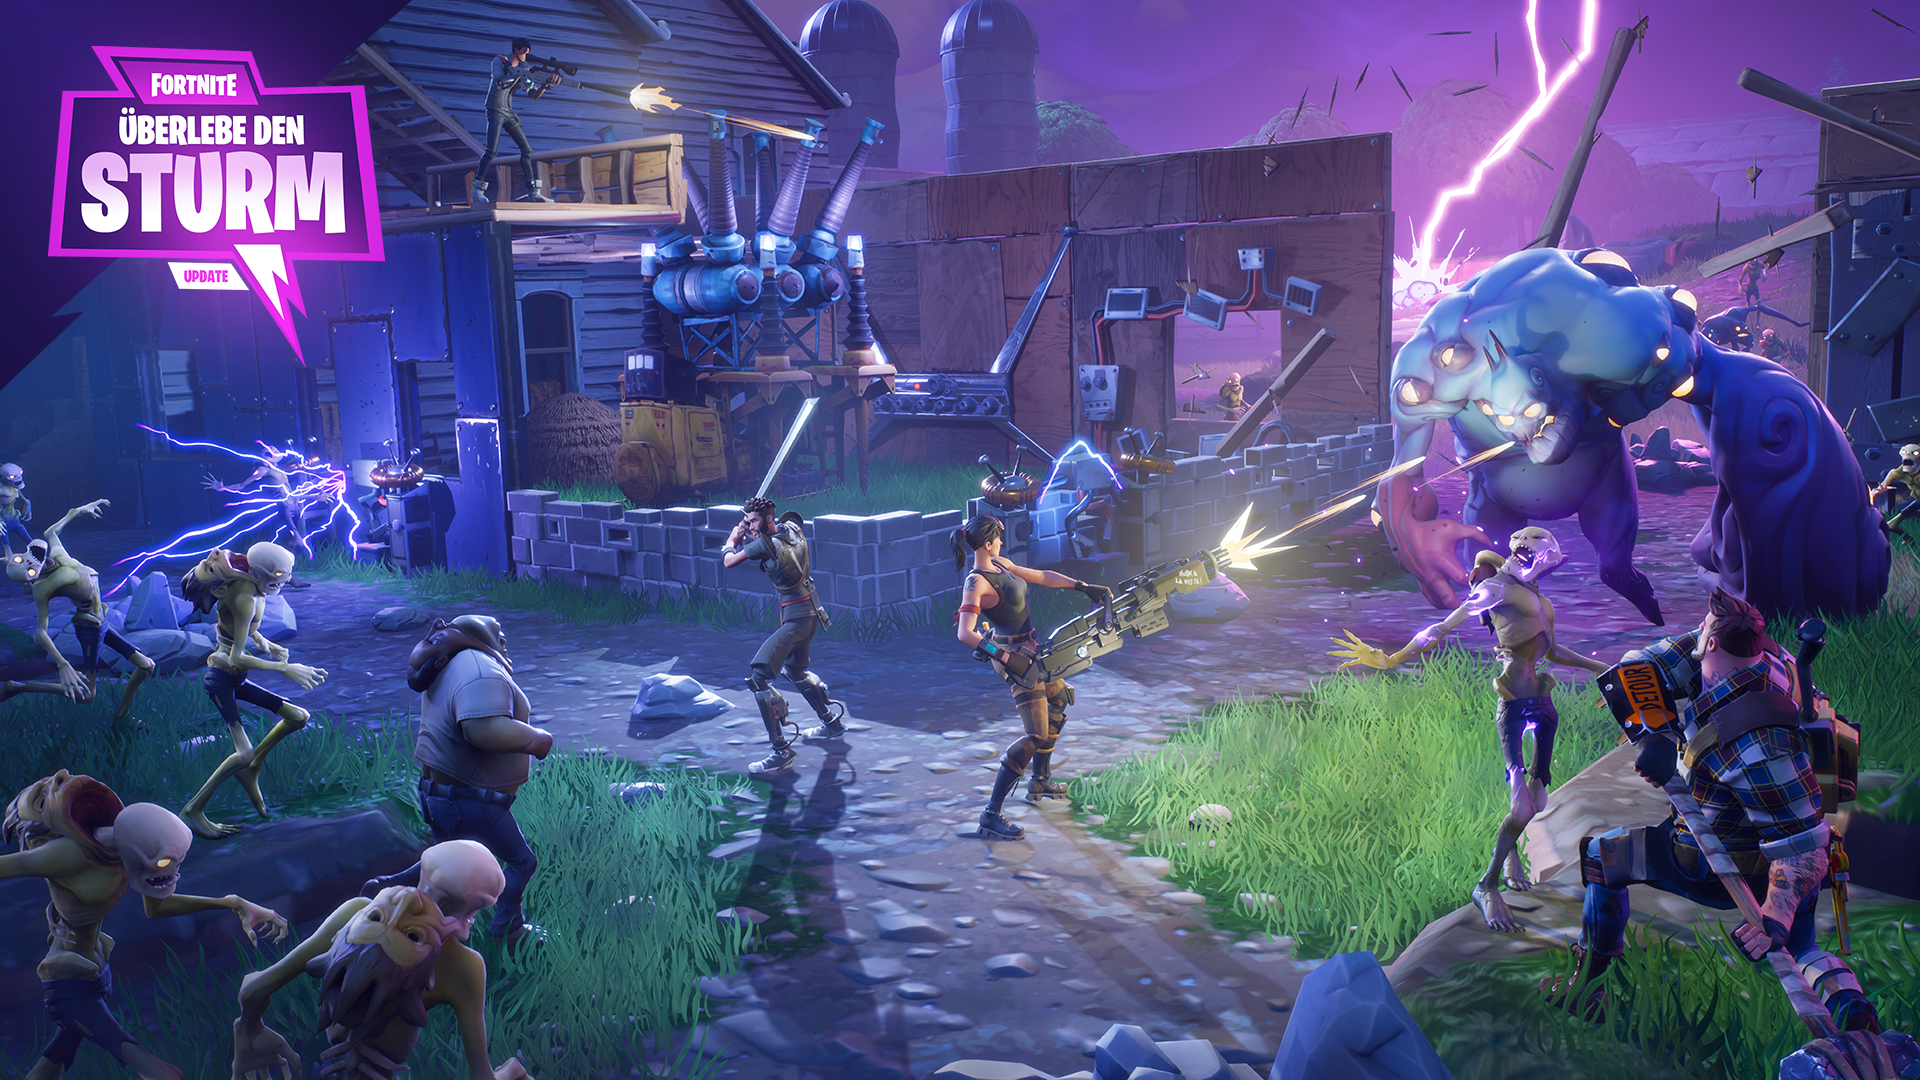 Fortnite%2Fblog%2Fsurvive-the-storm---release-notes%2FDE_Survivor-Mode-Gameplay-1920x1080-f16c2c98a379831088052b94cd4b39423bec11ad